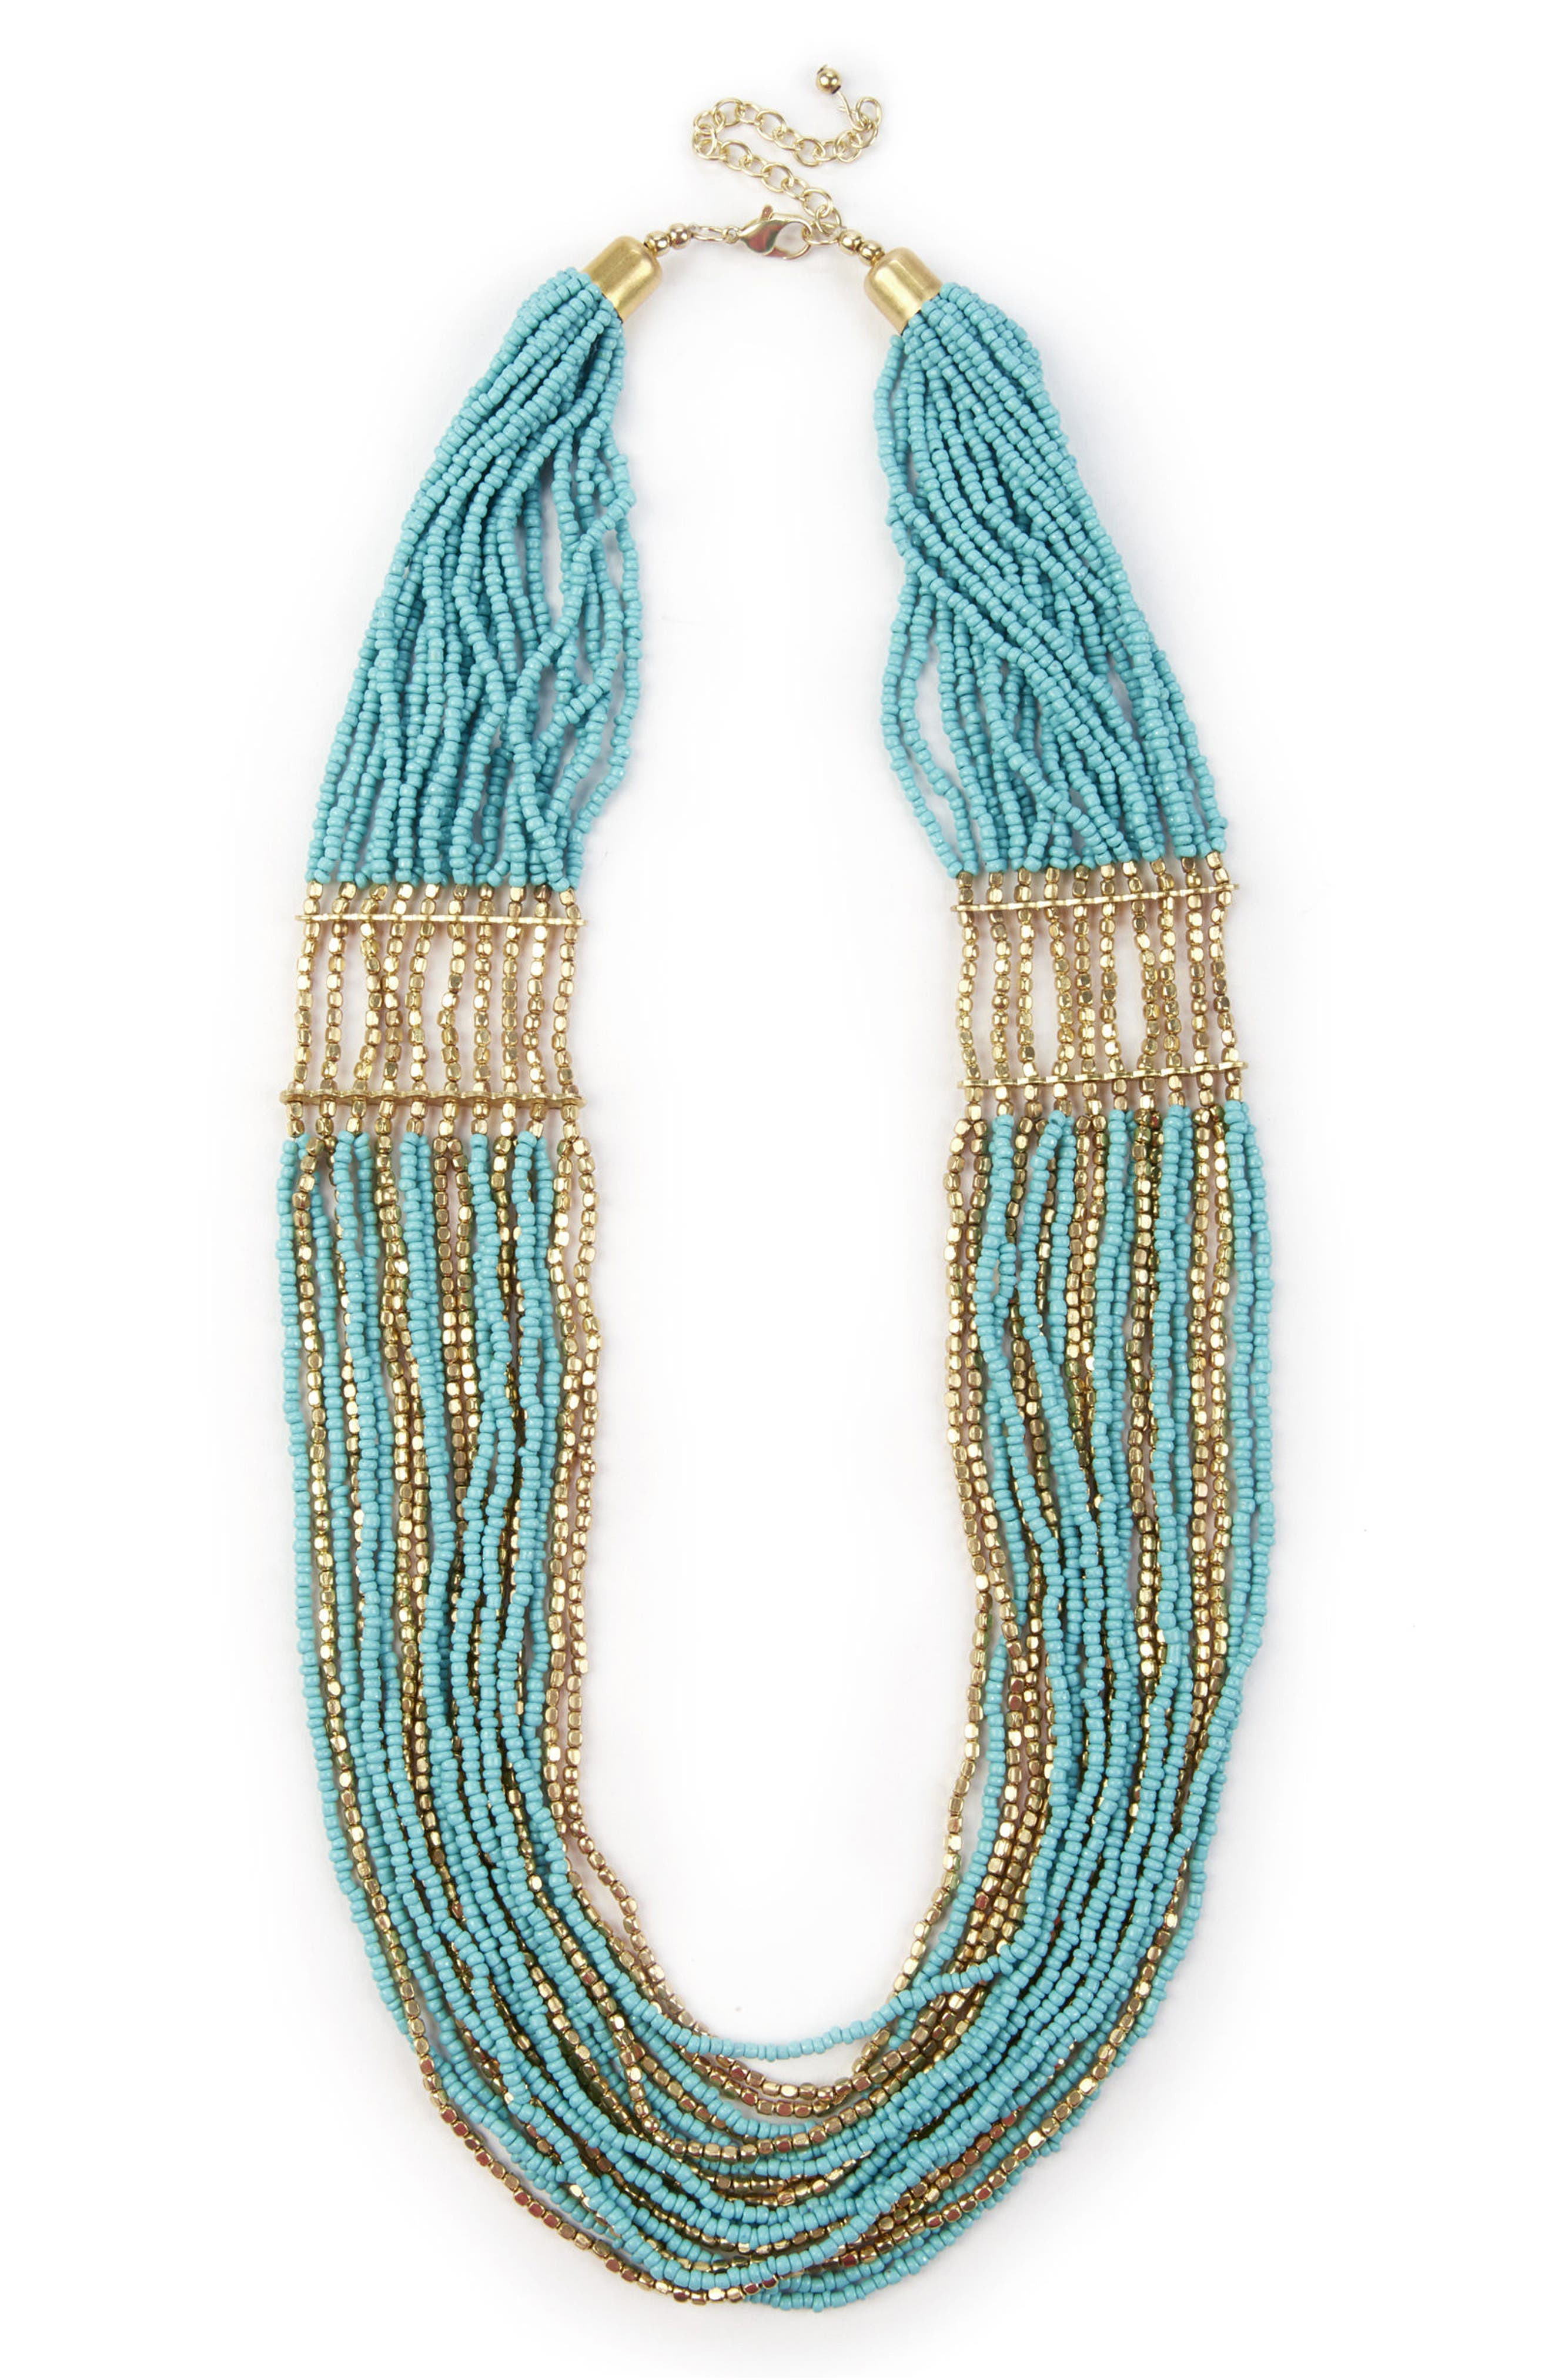 Multistrand Beaded Necklace,                             Main thumbnail 1, color,                             441